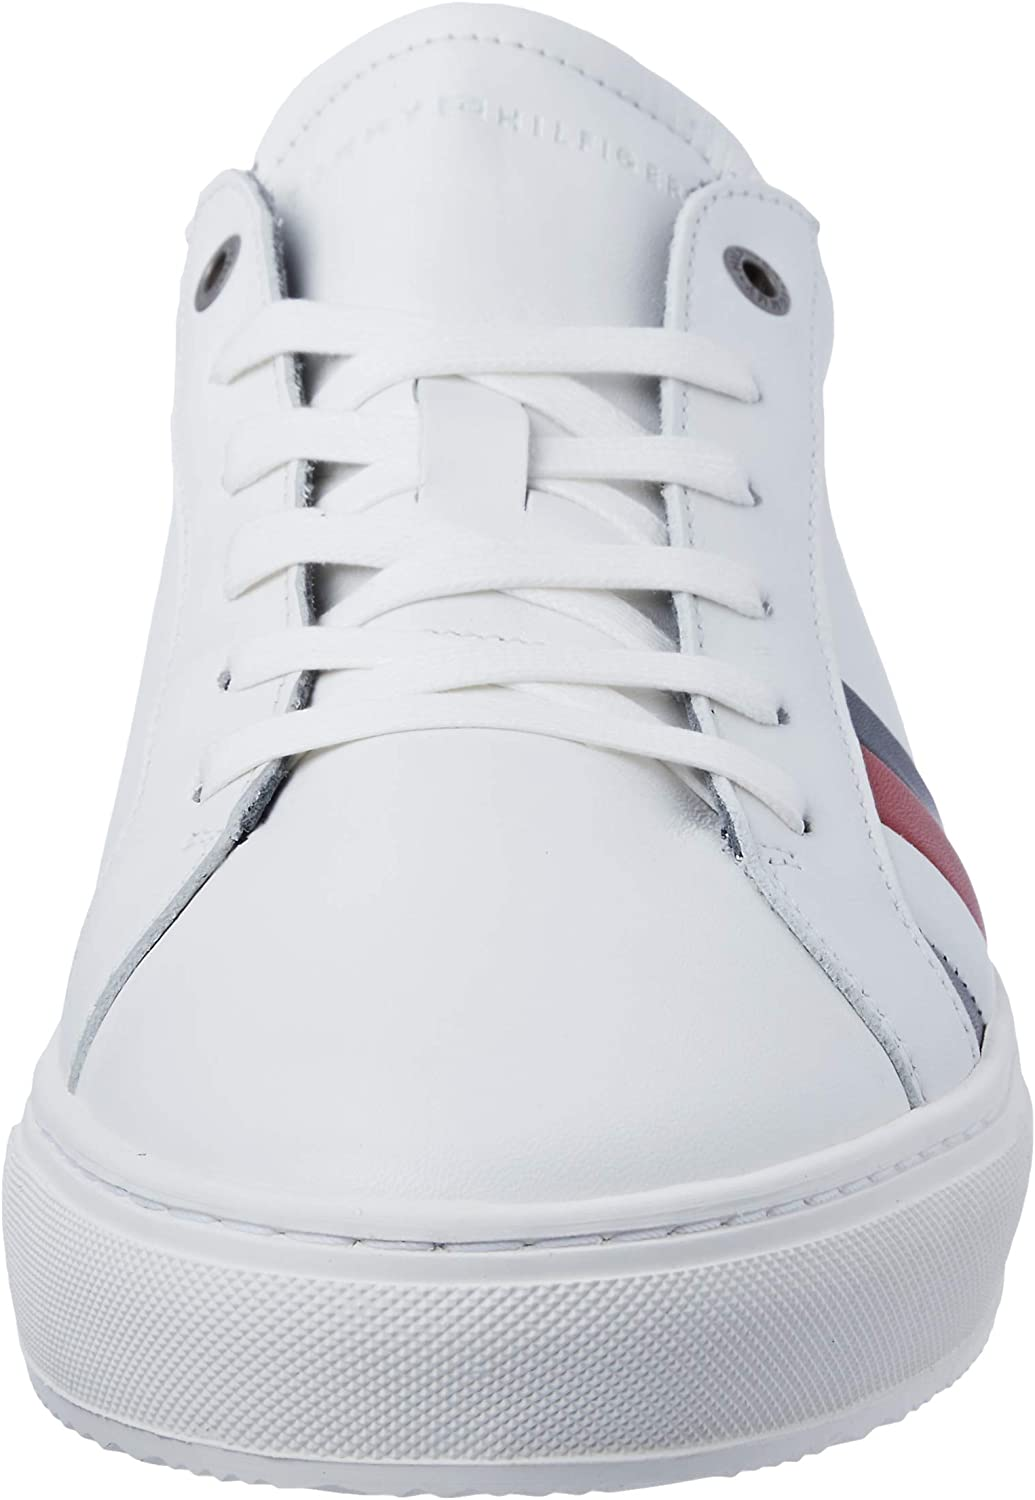 Tommy Hilfiger Signature Stripe Leather Shoes